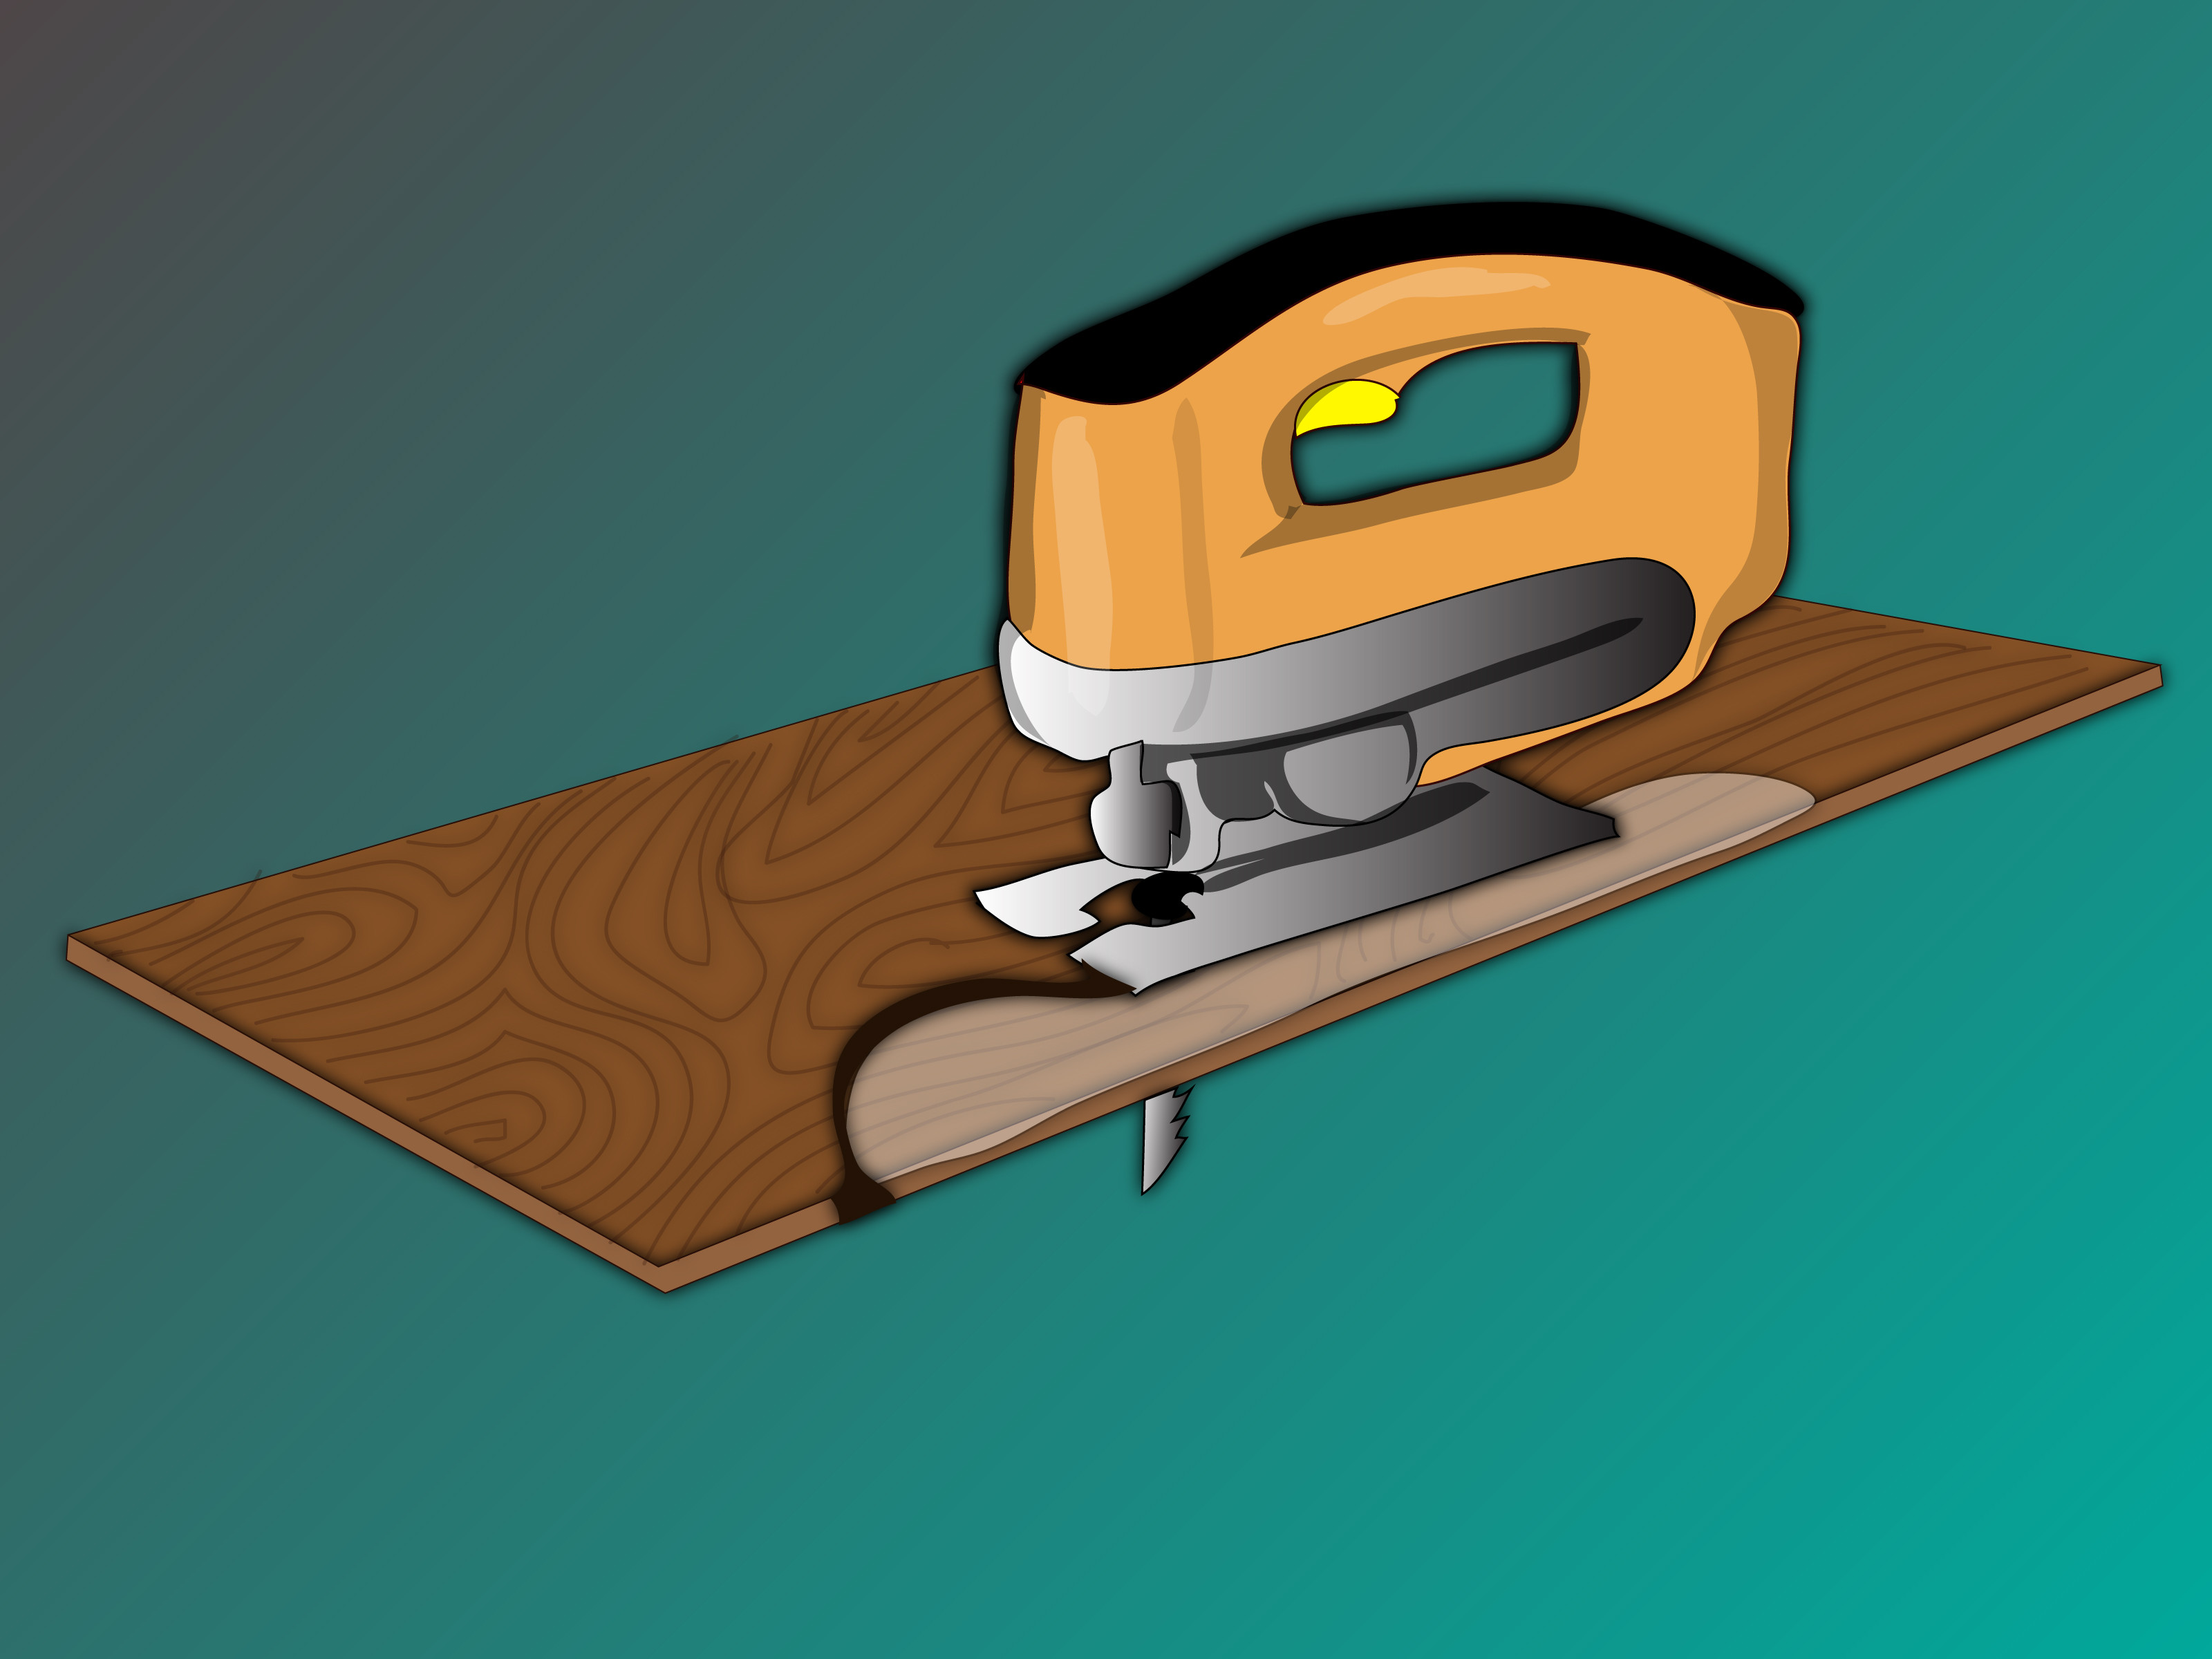 hardwood floor installation tools of how to cut laminate flooring 6 steps with pictures wikihow throughout cut laminate flooring step 6